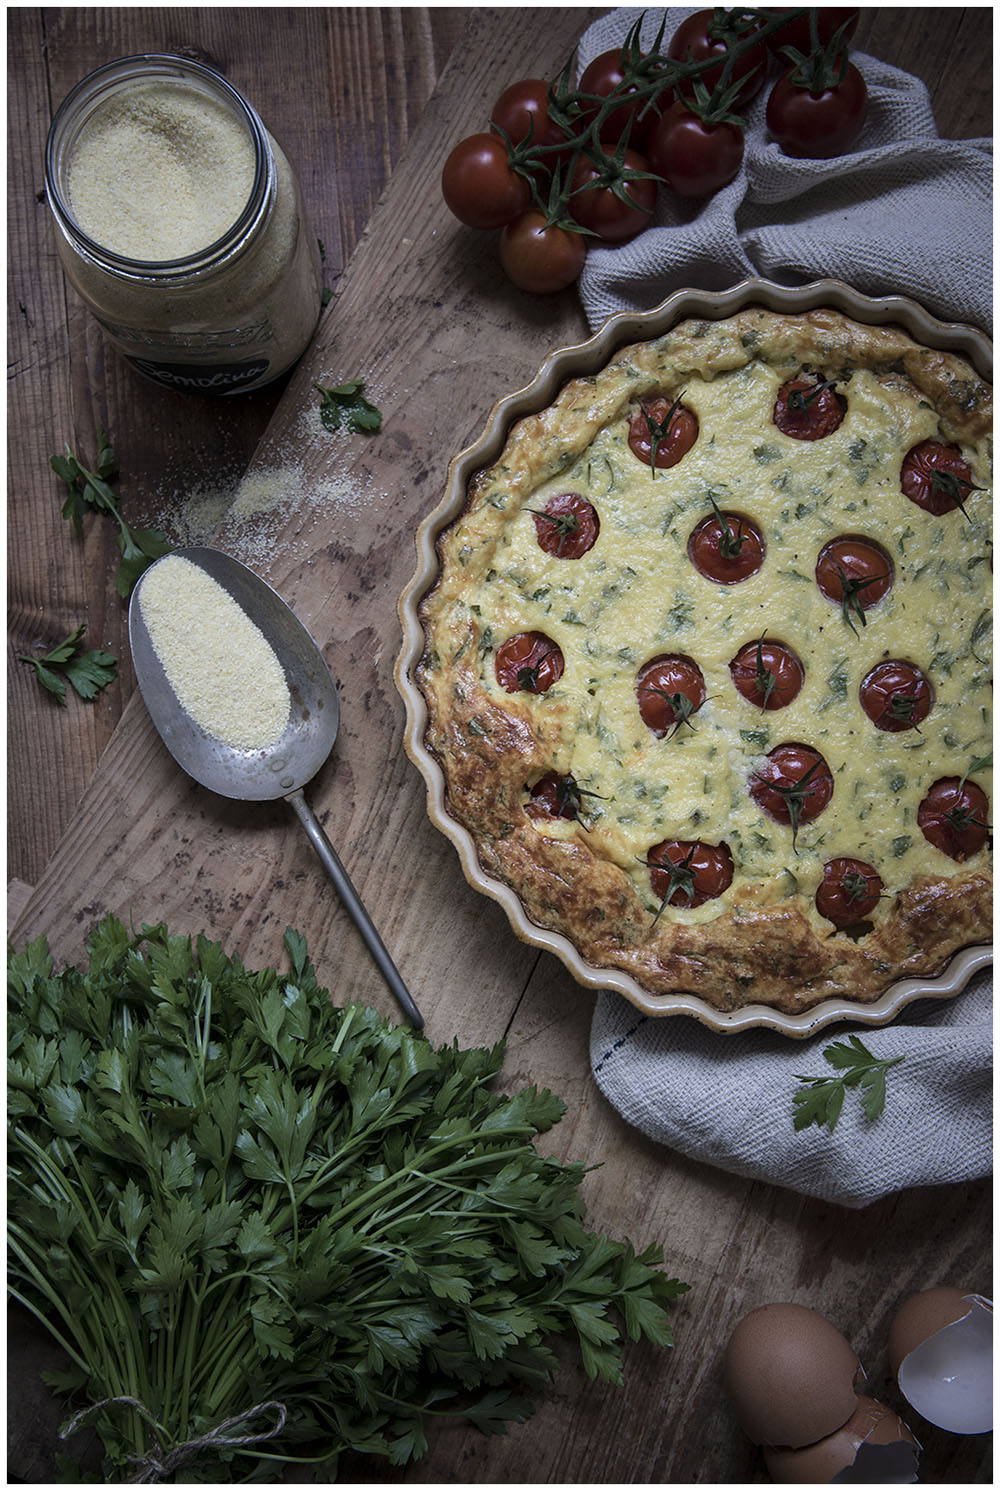 Cherry Tomato and Cheese Clafoutis